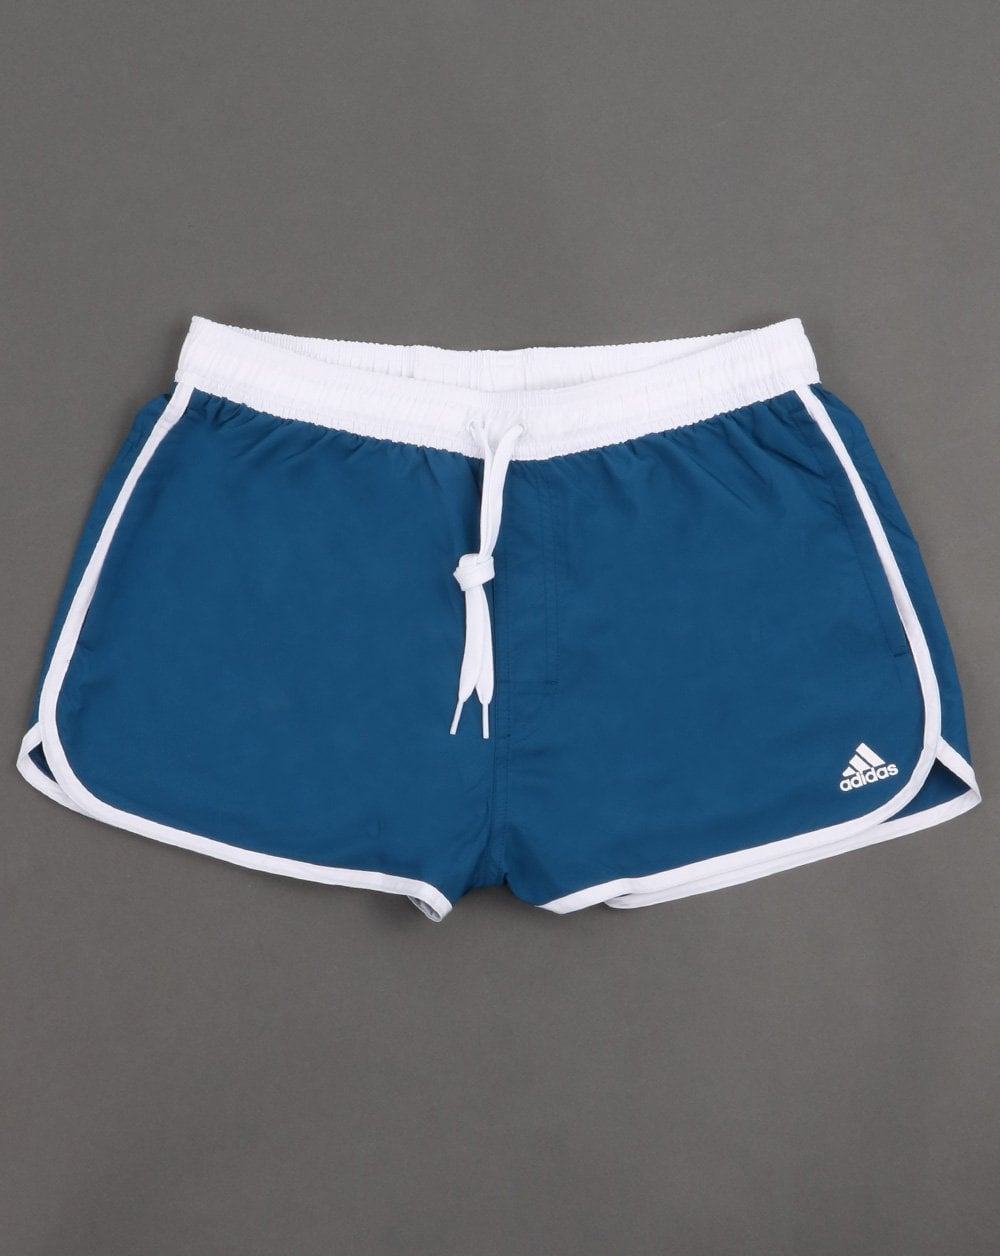 3b97a3c342 Adidas Originals Split Swim Shorts Deep Blue | 80s Casual Classics